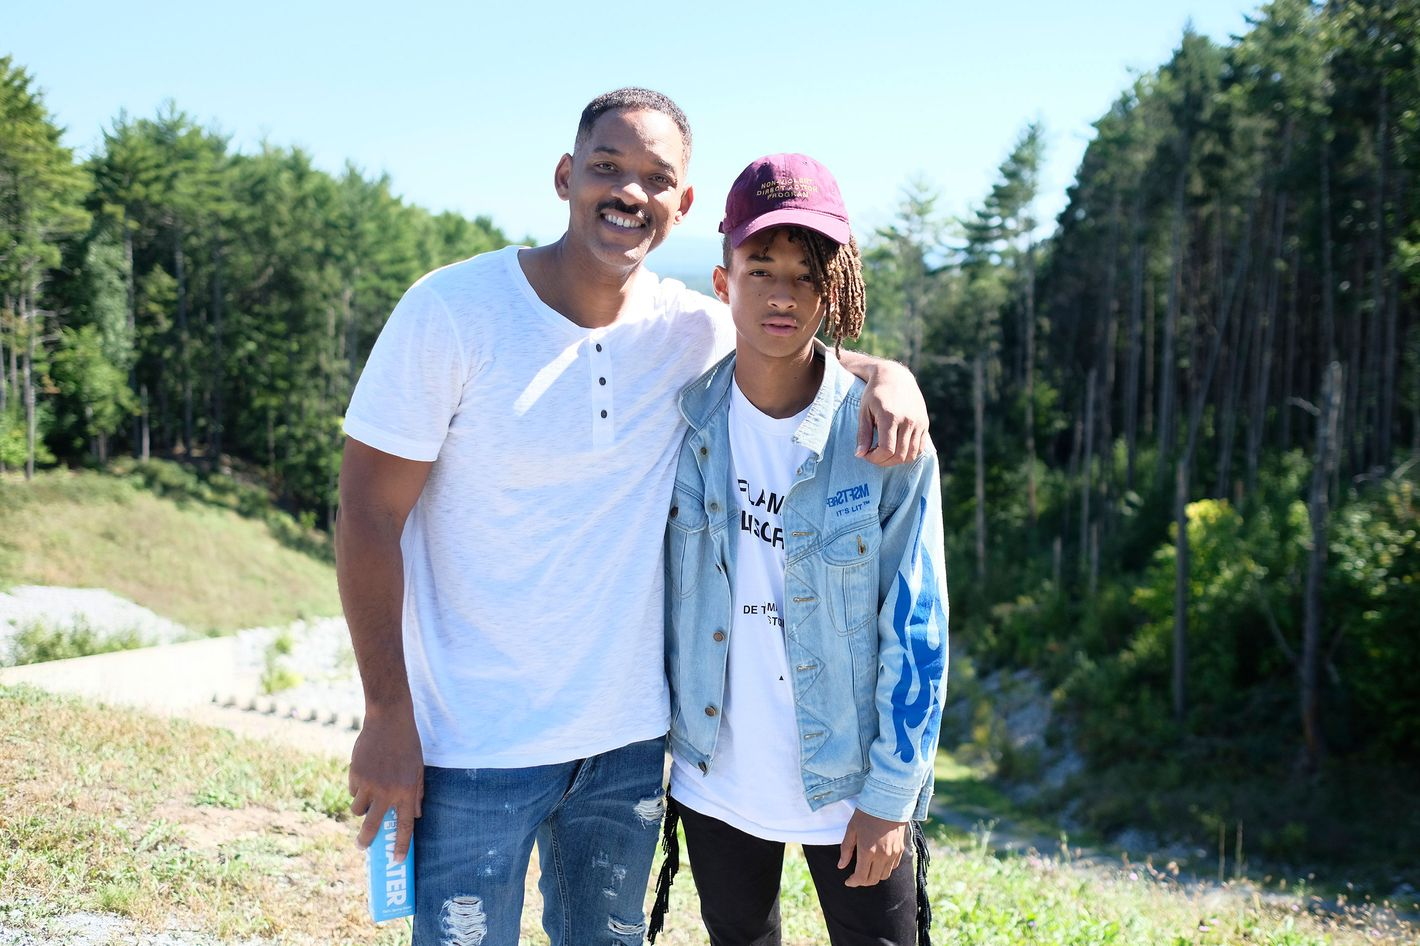 A tour of will and jaden smiths justwater factory voltagebd Image collections